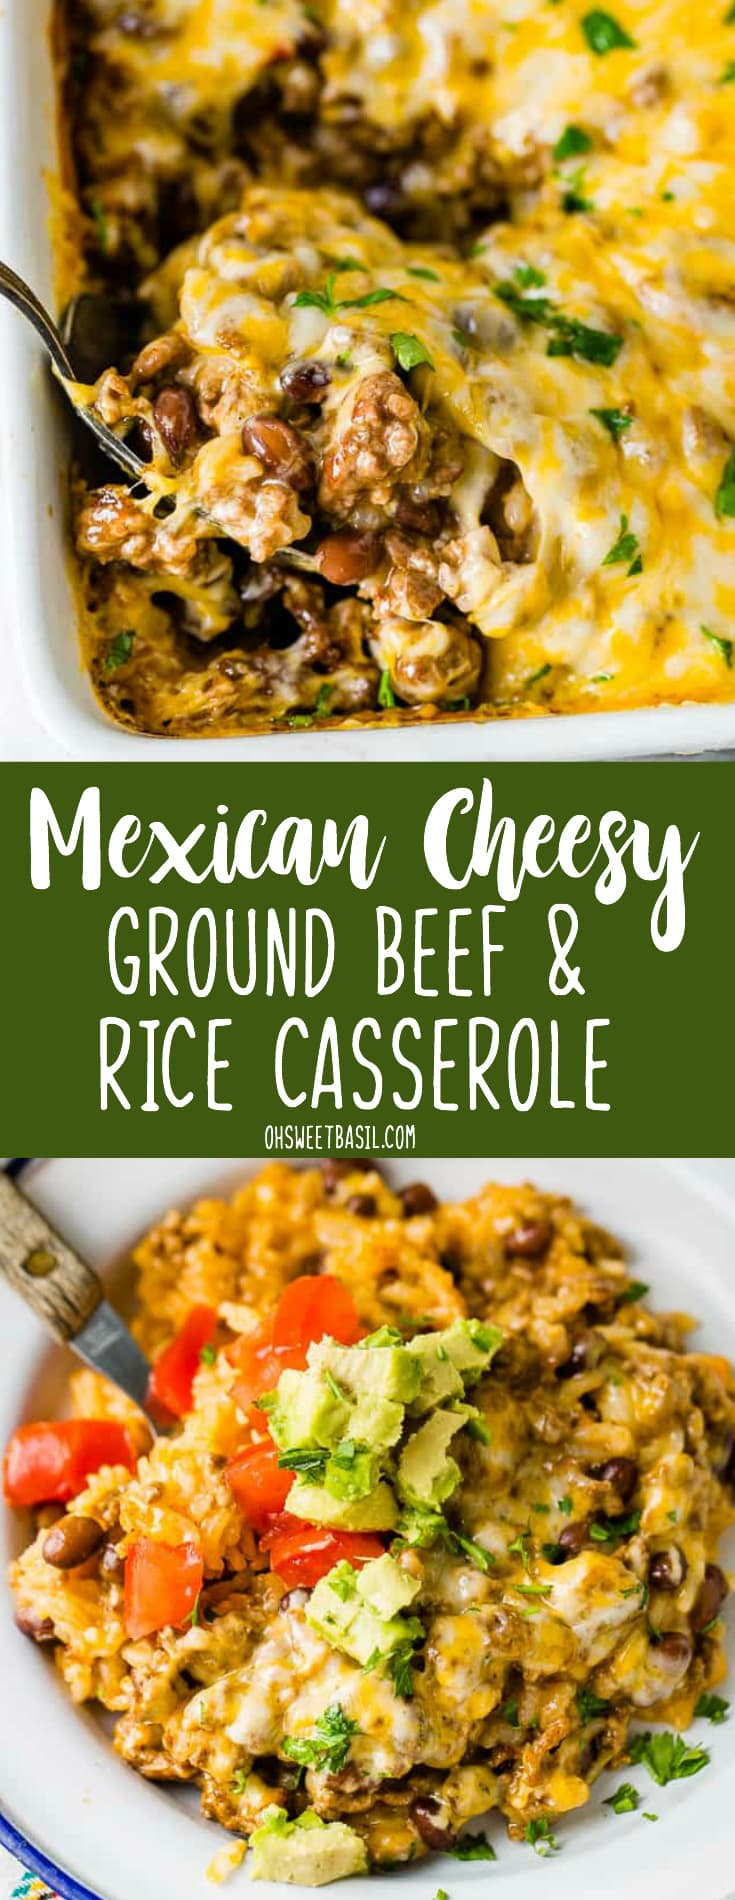 a white casserole dish with a Mexican cheesy ground beef and rice casserole being scooped up with a large spoon